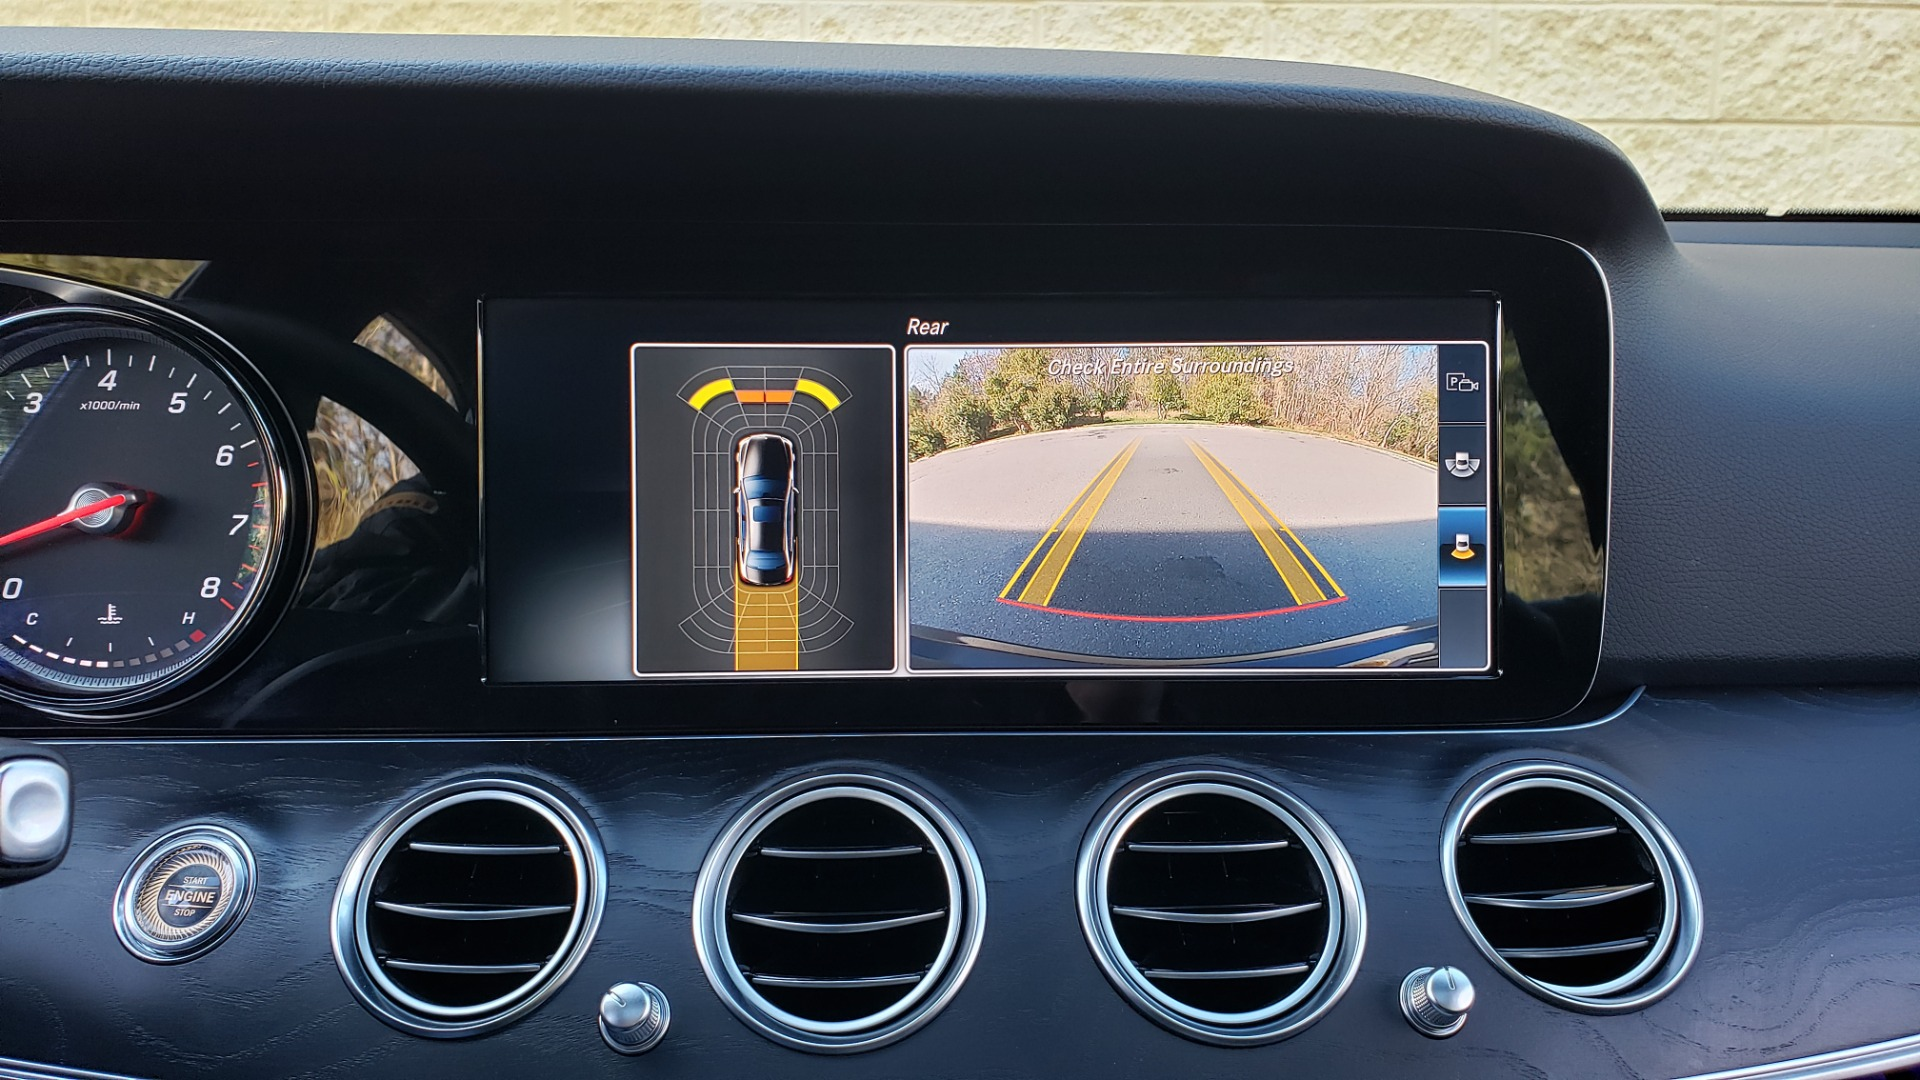 Used 2017 Mercedes-Benz E-CLASS E 300 PREMIUM / NAV / SUNROOF / BURMESTER / HTD STS / REARVIEW for sale Sold at Formula Imports in Charlotte NC 28227 49